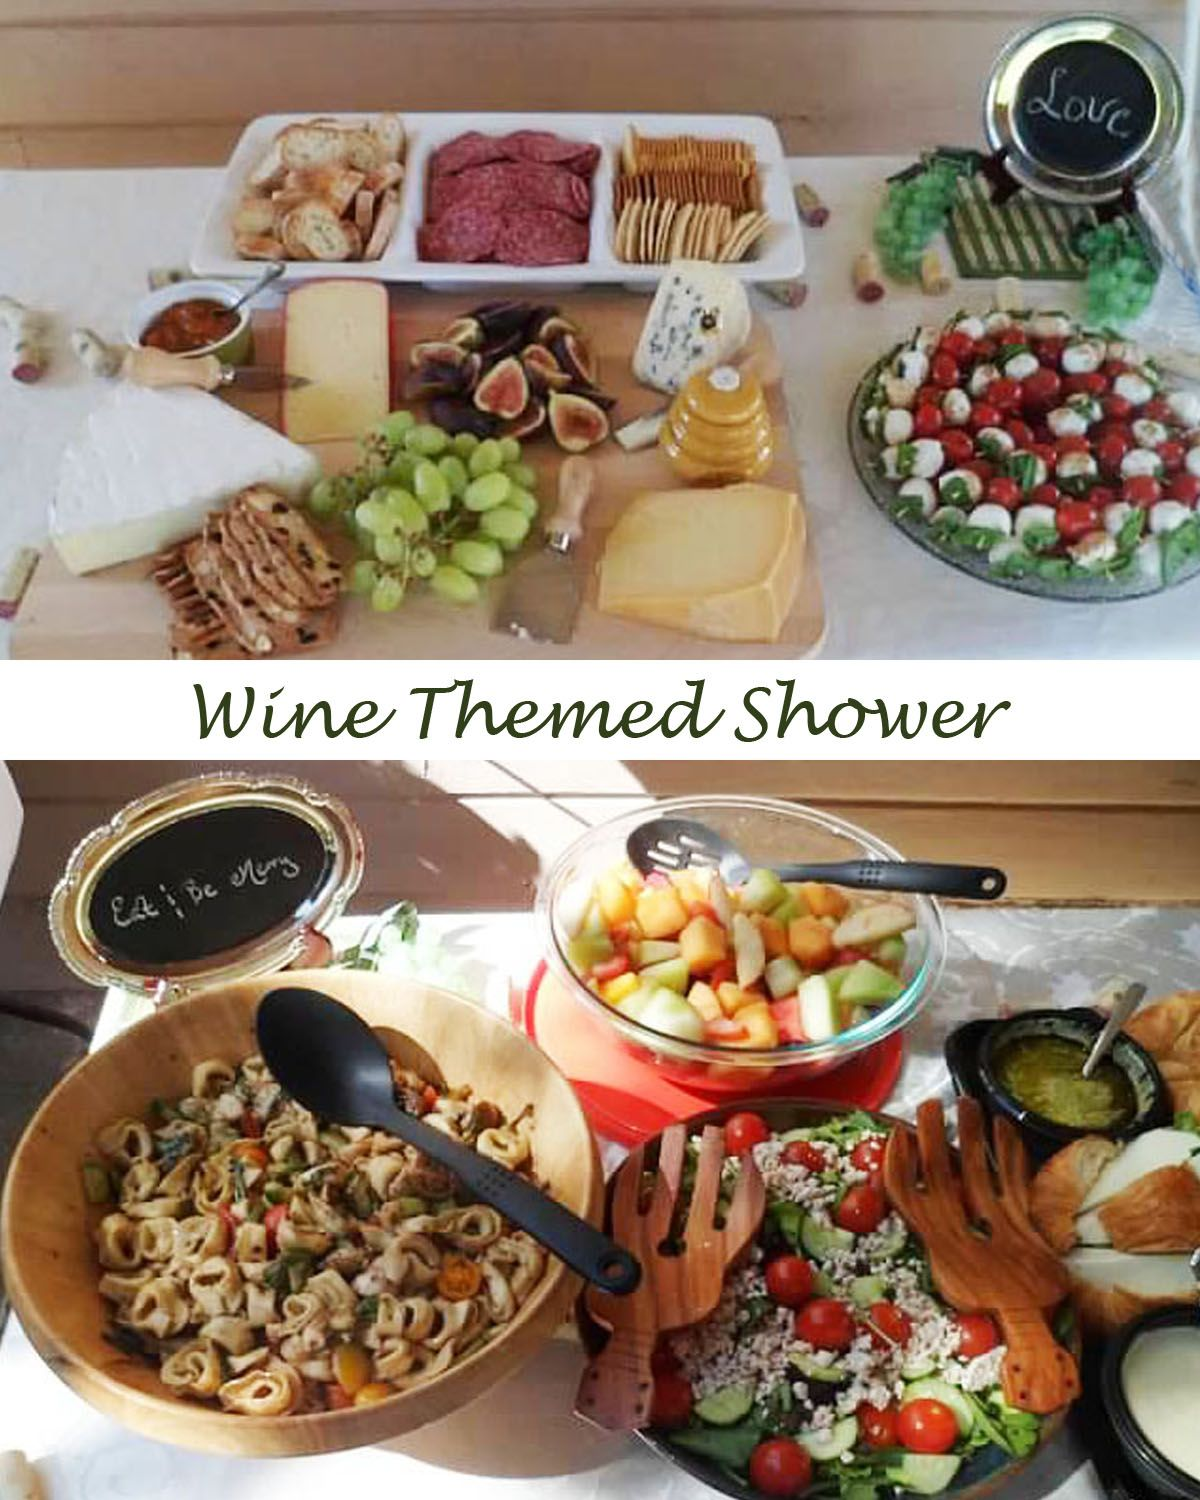 Party Food Spread For Kids: Food Spread For Wine Themed Bridal Shower